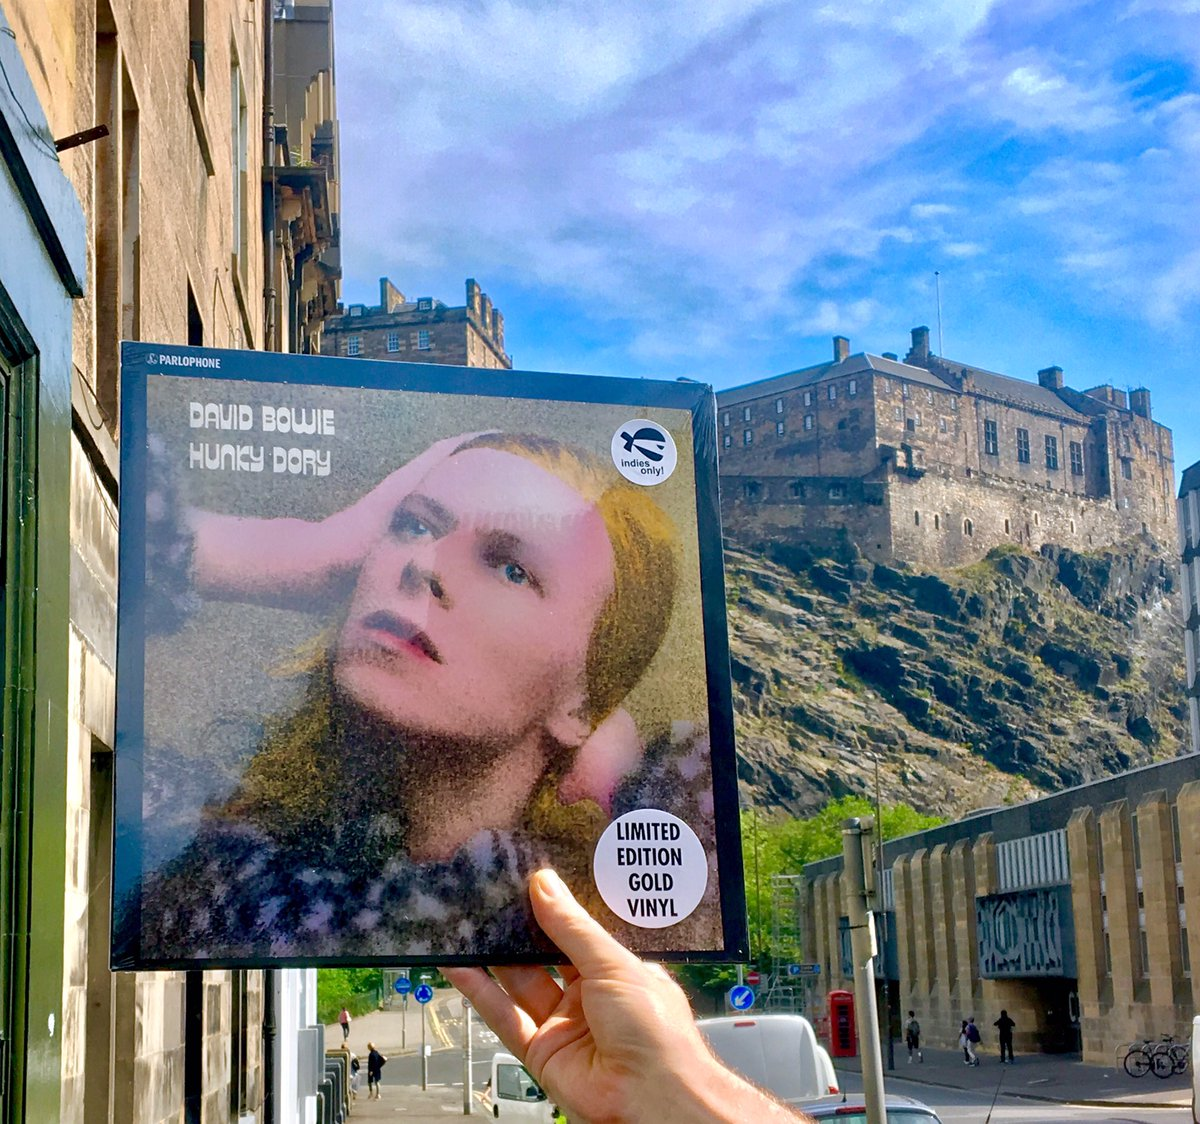 What a day to buy a record! We have a reissue of @DavidBowieReal &#39;Hunky Dory&#39; on gold vinyl #DavidBowie #New #Music #Edinburgh #Scotland<br>http://pic.twitter.com/Dxt8QKaasL